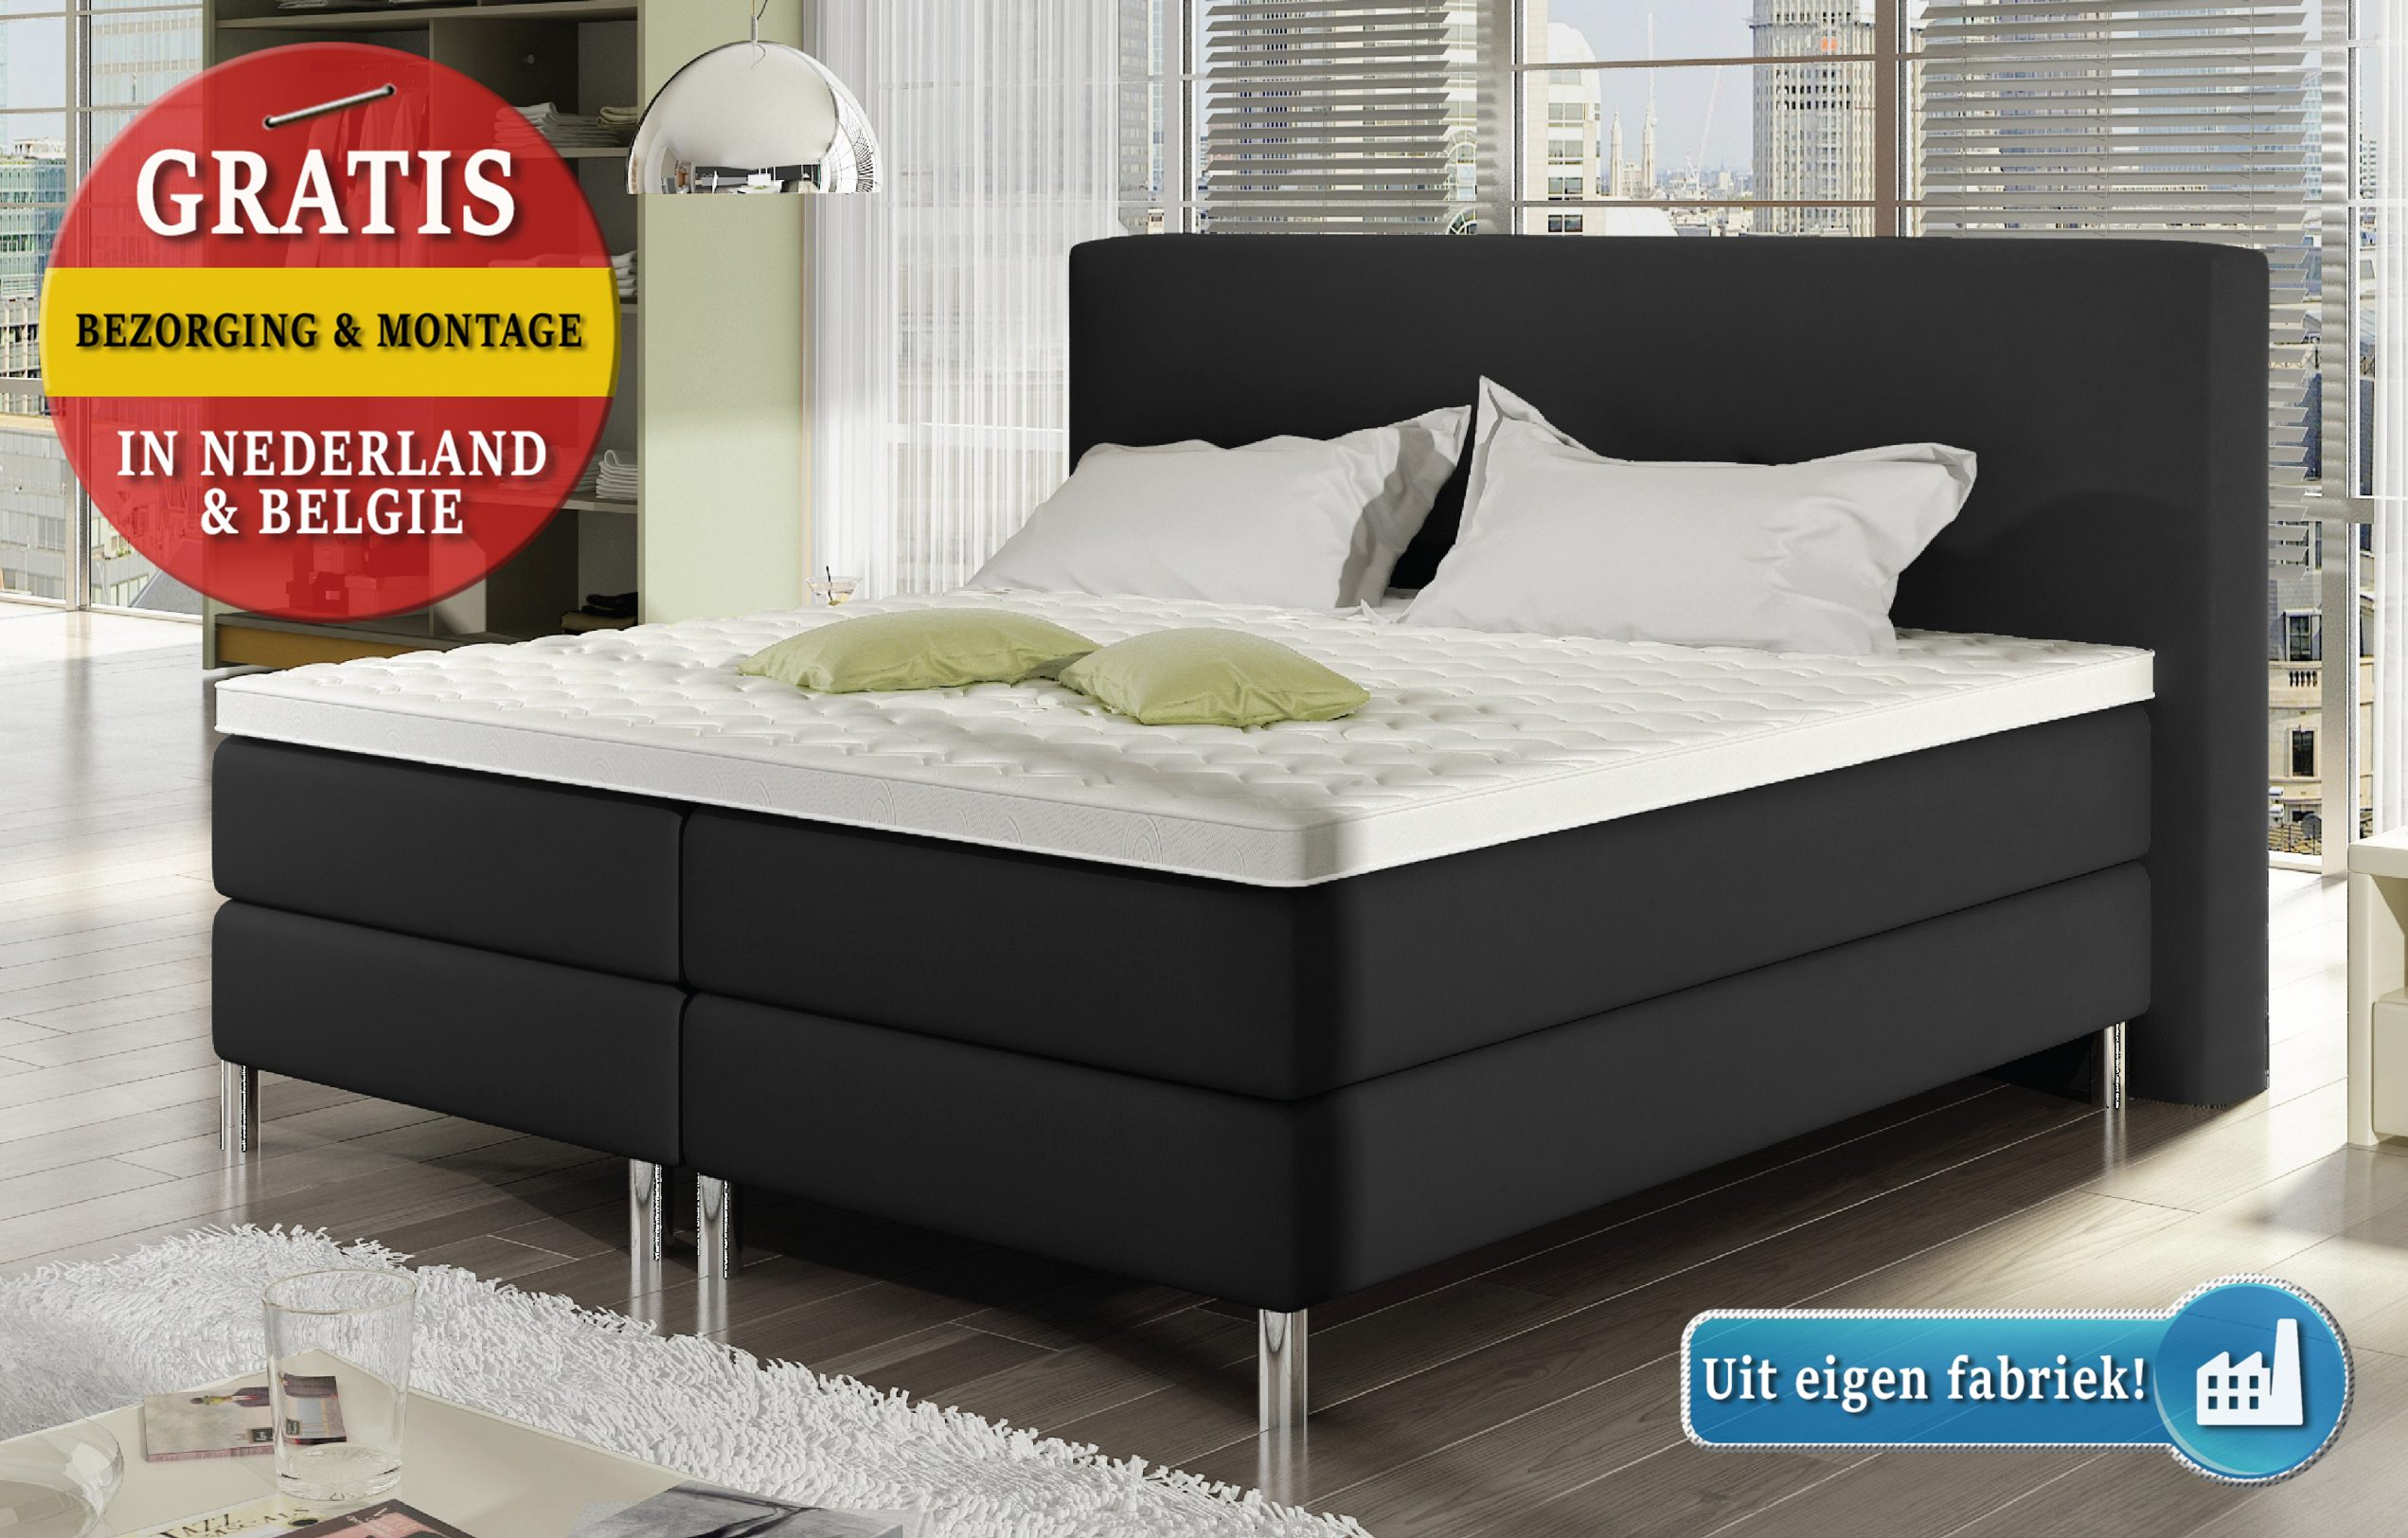 Bed Maten Boxspring Roosendaal 498 Luxe Slaapkamer Boxsprings